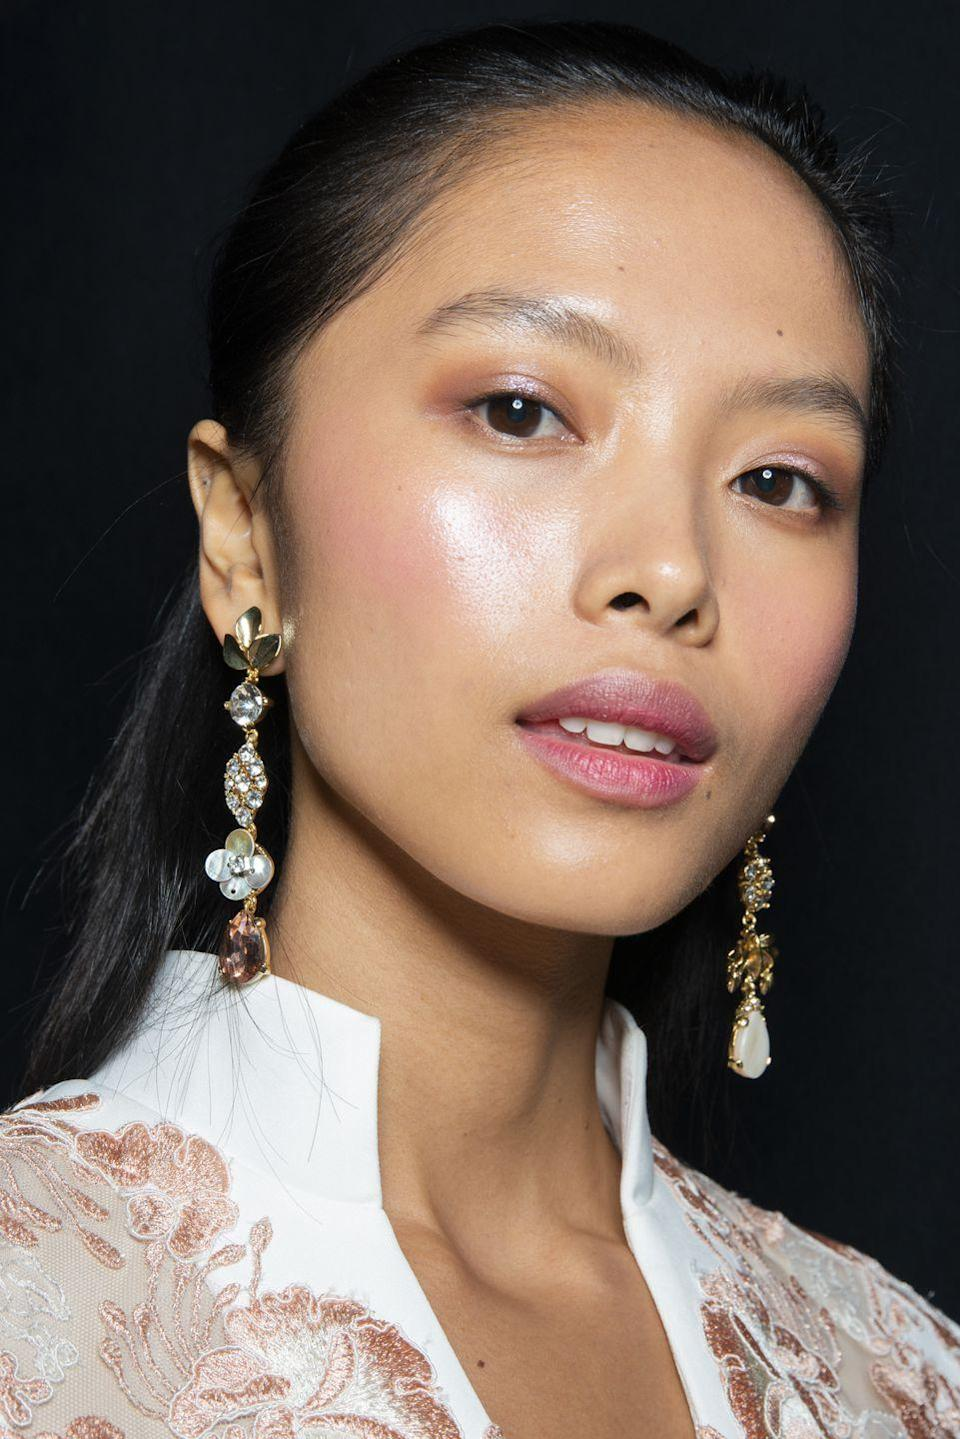 <p>Super-glossy skin with a sheer wash of fresh pink color on the eyes, lips, and cheeks backstage at Badgley Mischka.</p>